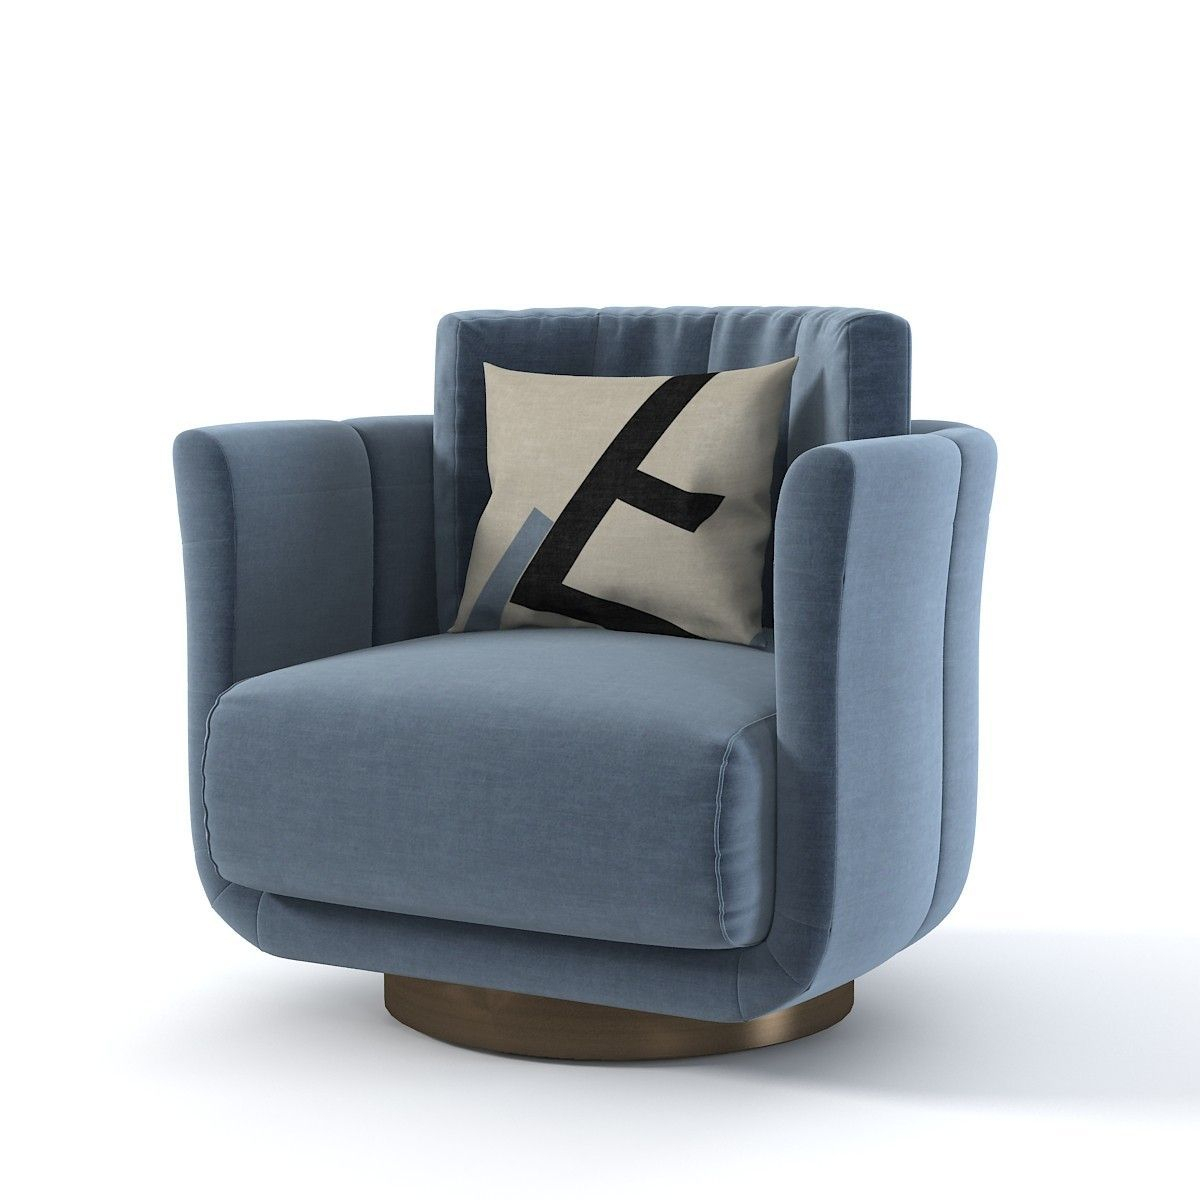 Fendi Casa Artu 3D Model #Sofachair | Italian Furniture Within Hutchinsen Polyester Blend Armchairs (View 5 of 15)